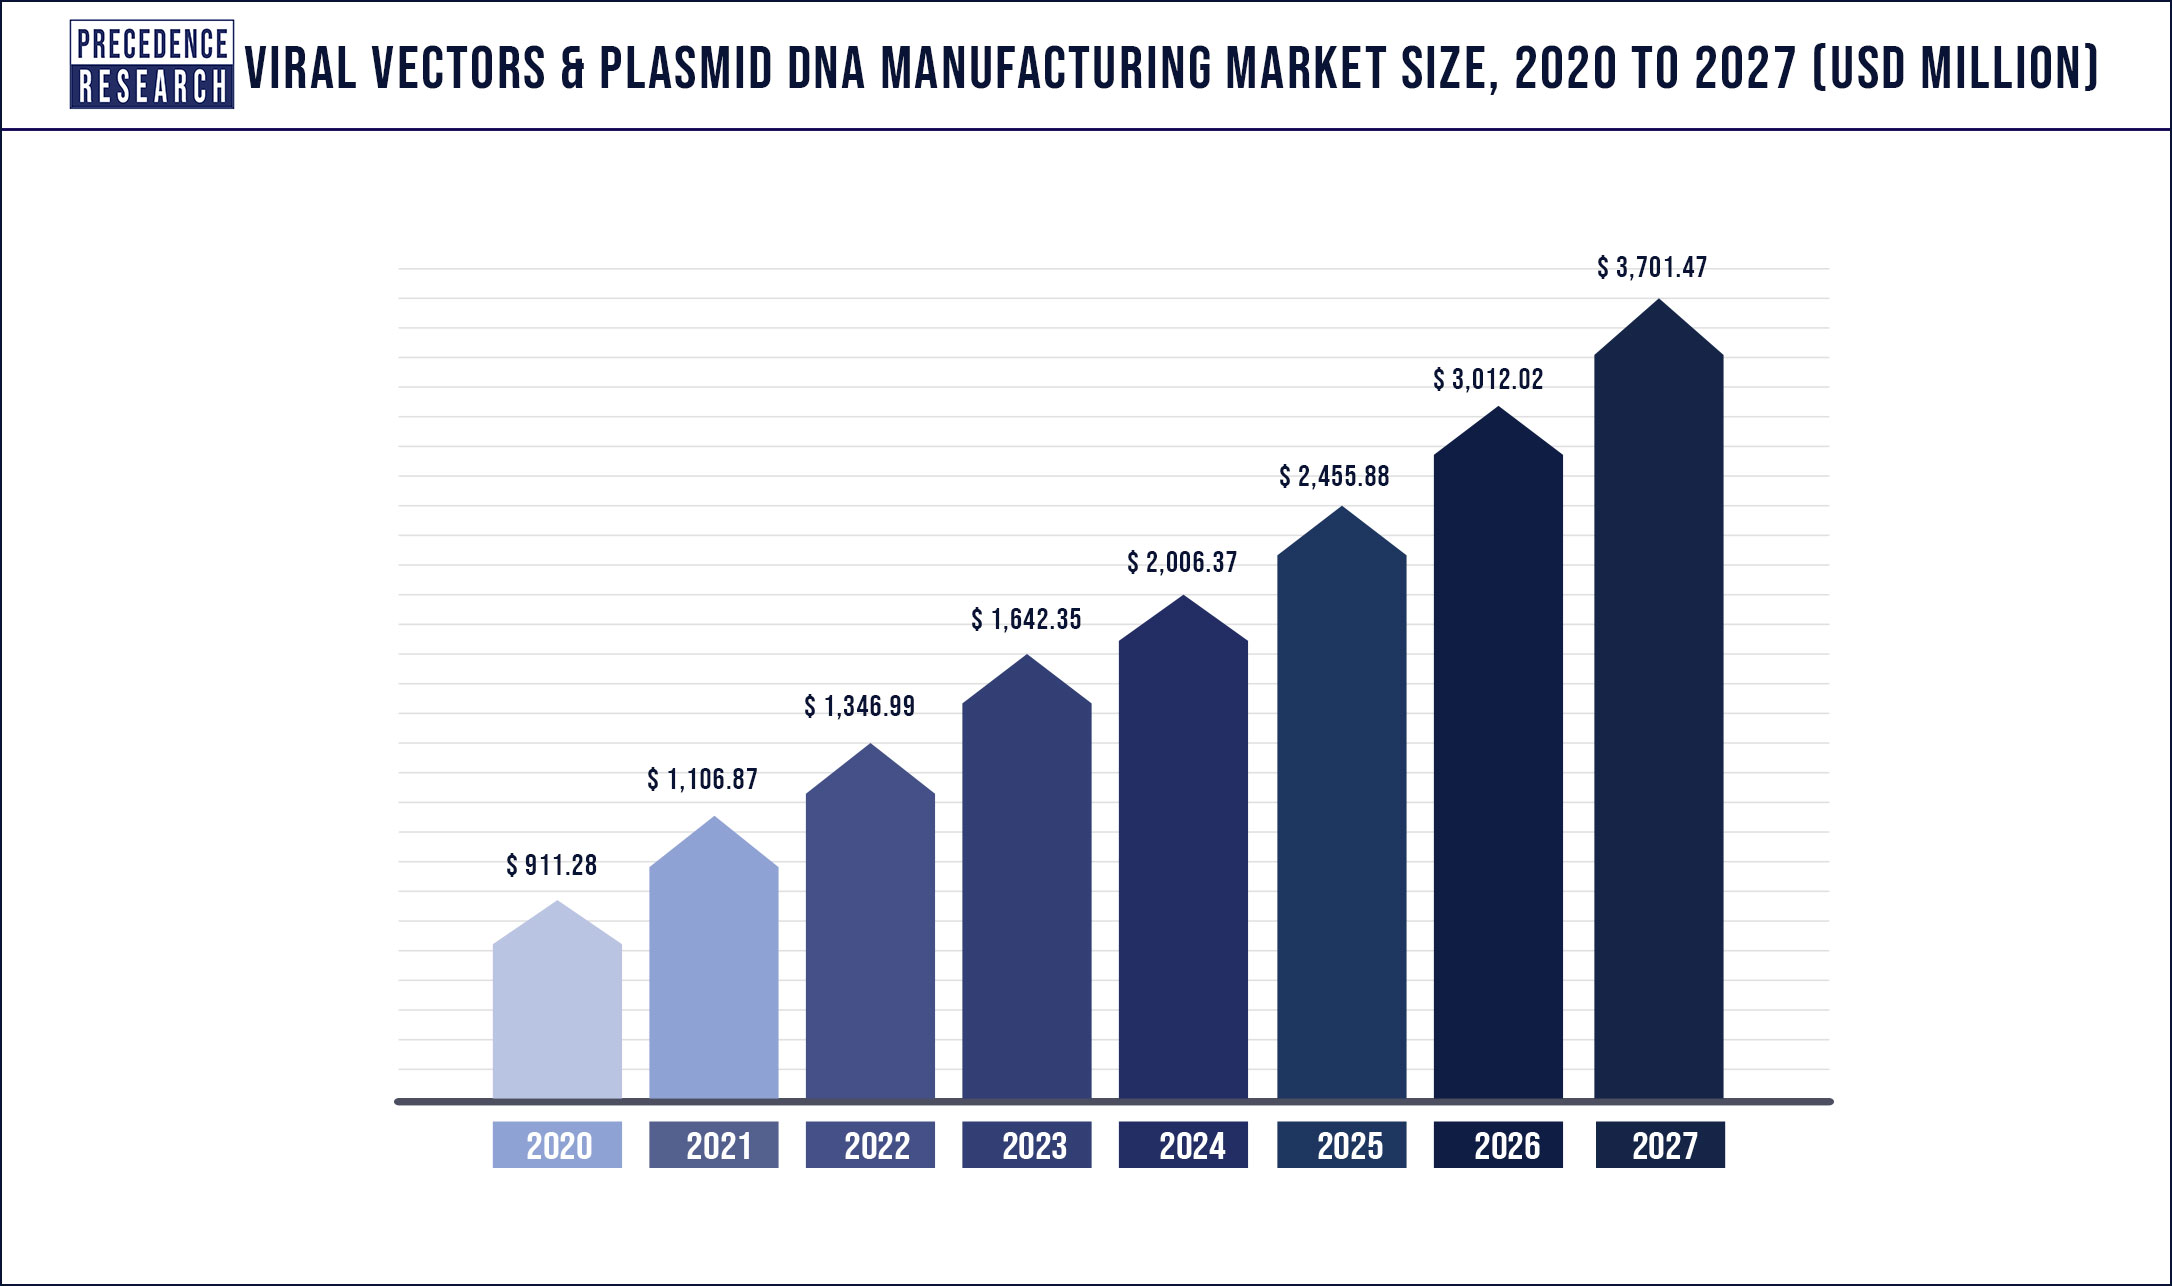 Viral Vectors and Plasmid DNA Manufacturing Market Size 2020 to 2027